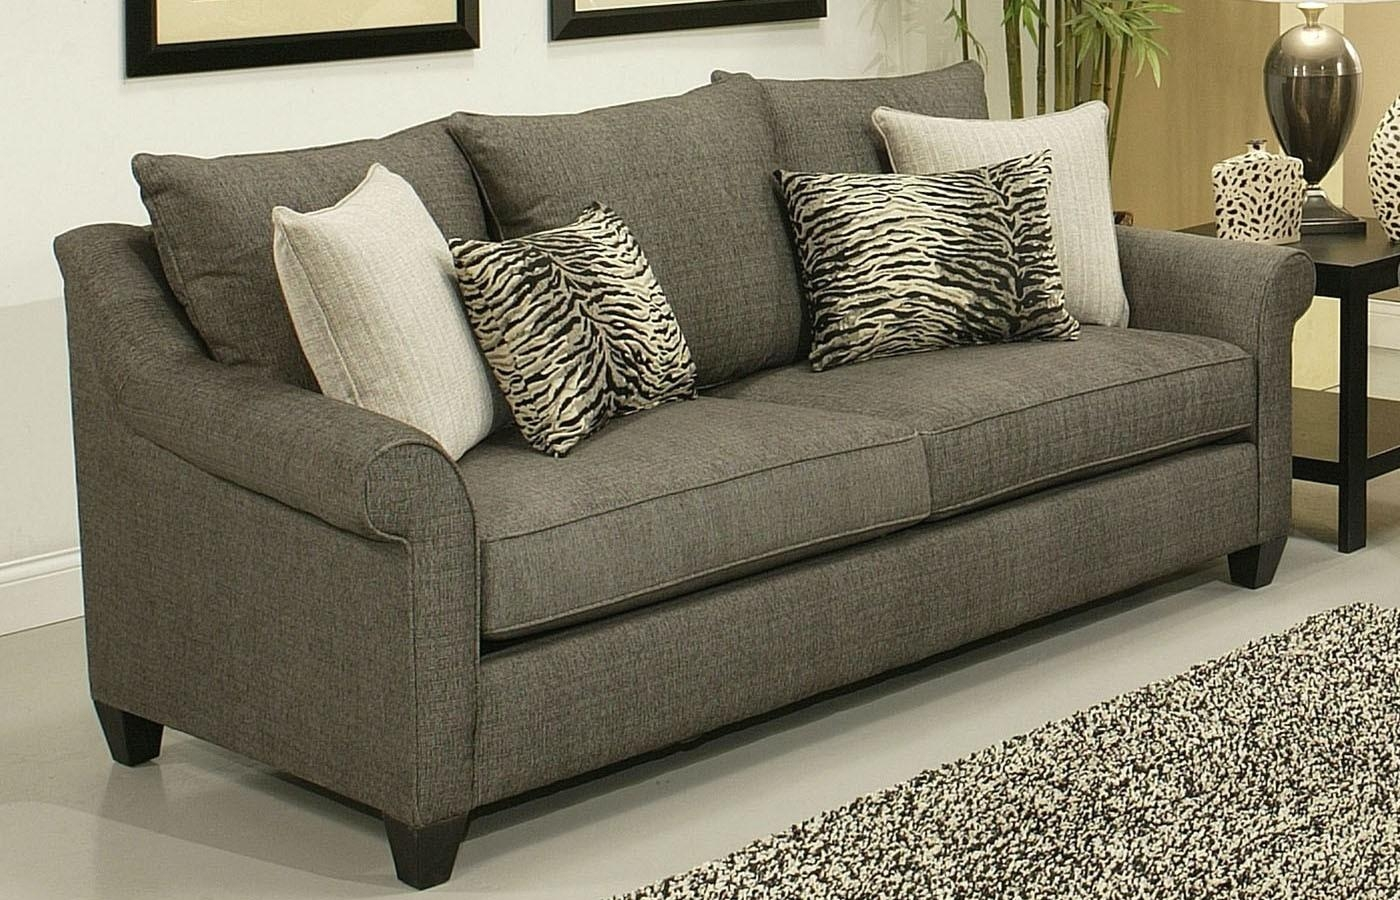 Featured Image of Sofa Orange County